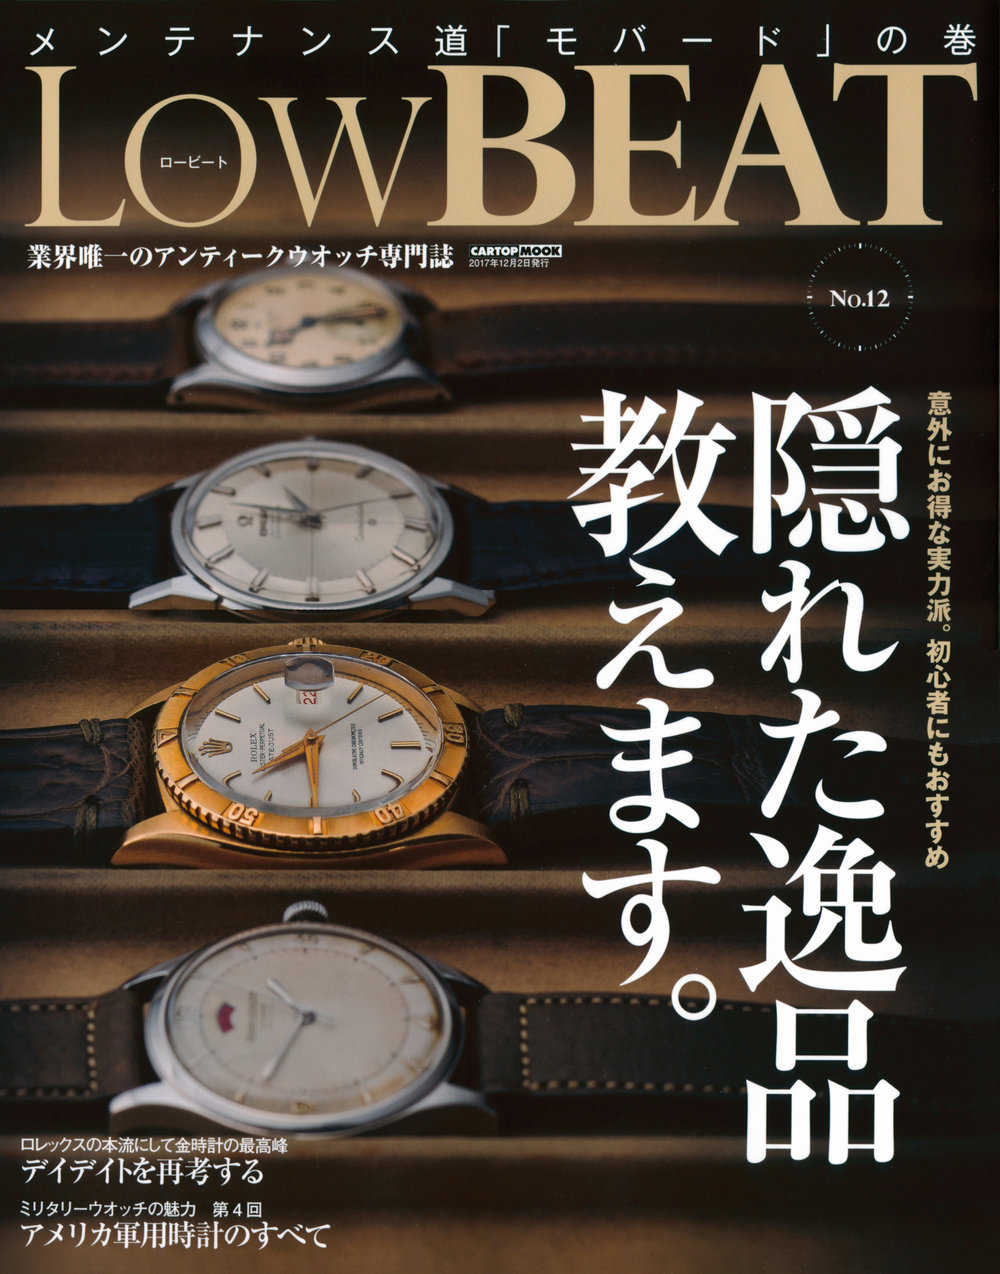 LowBeat No.12